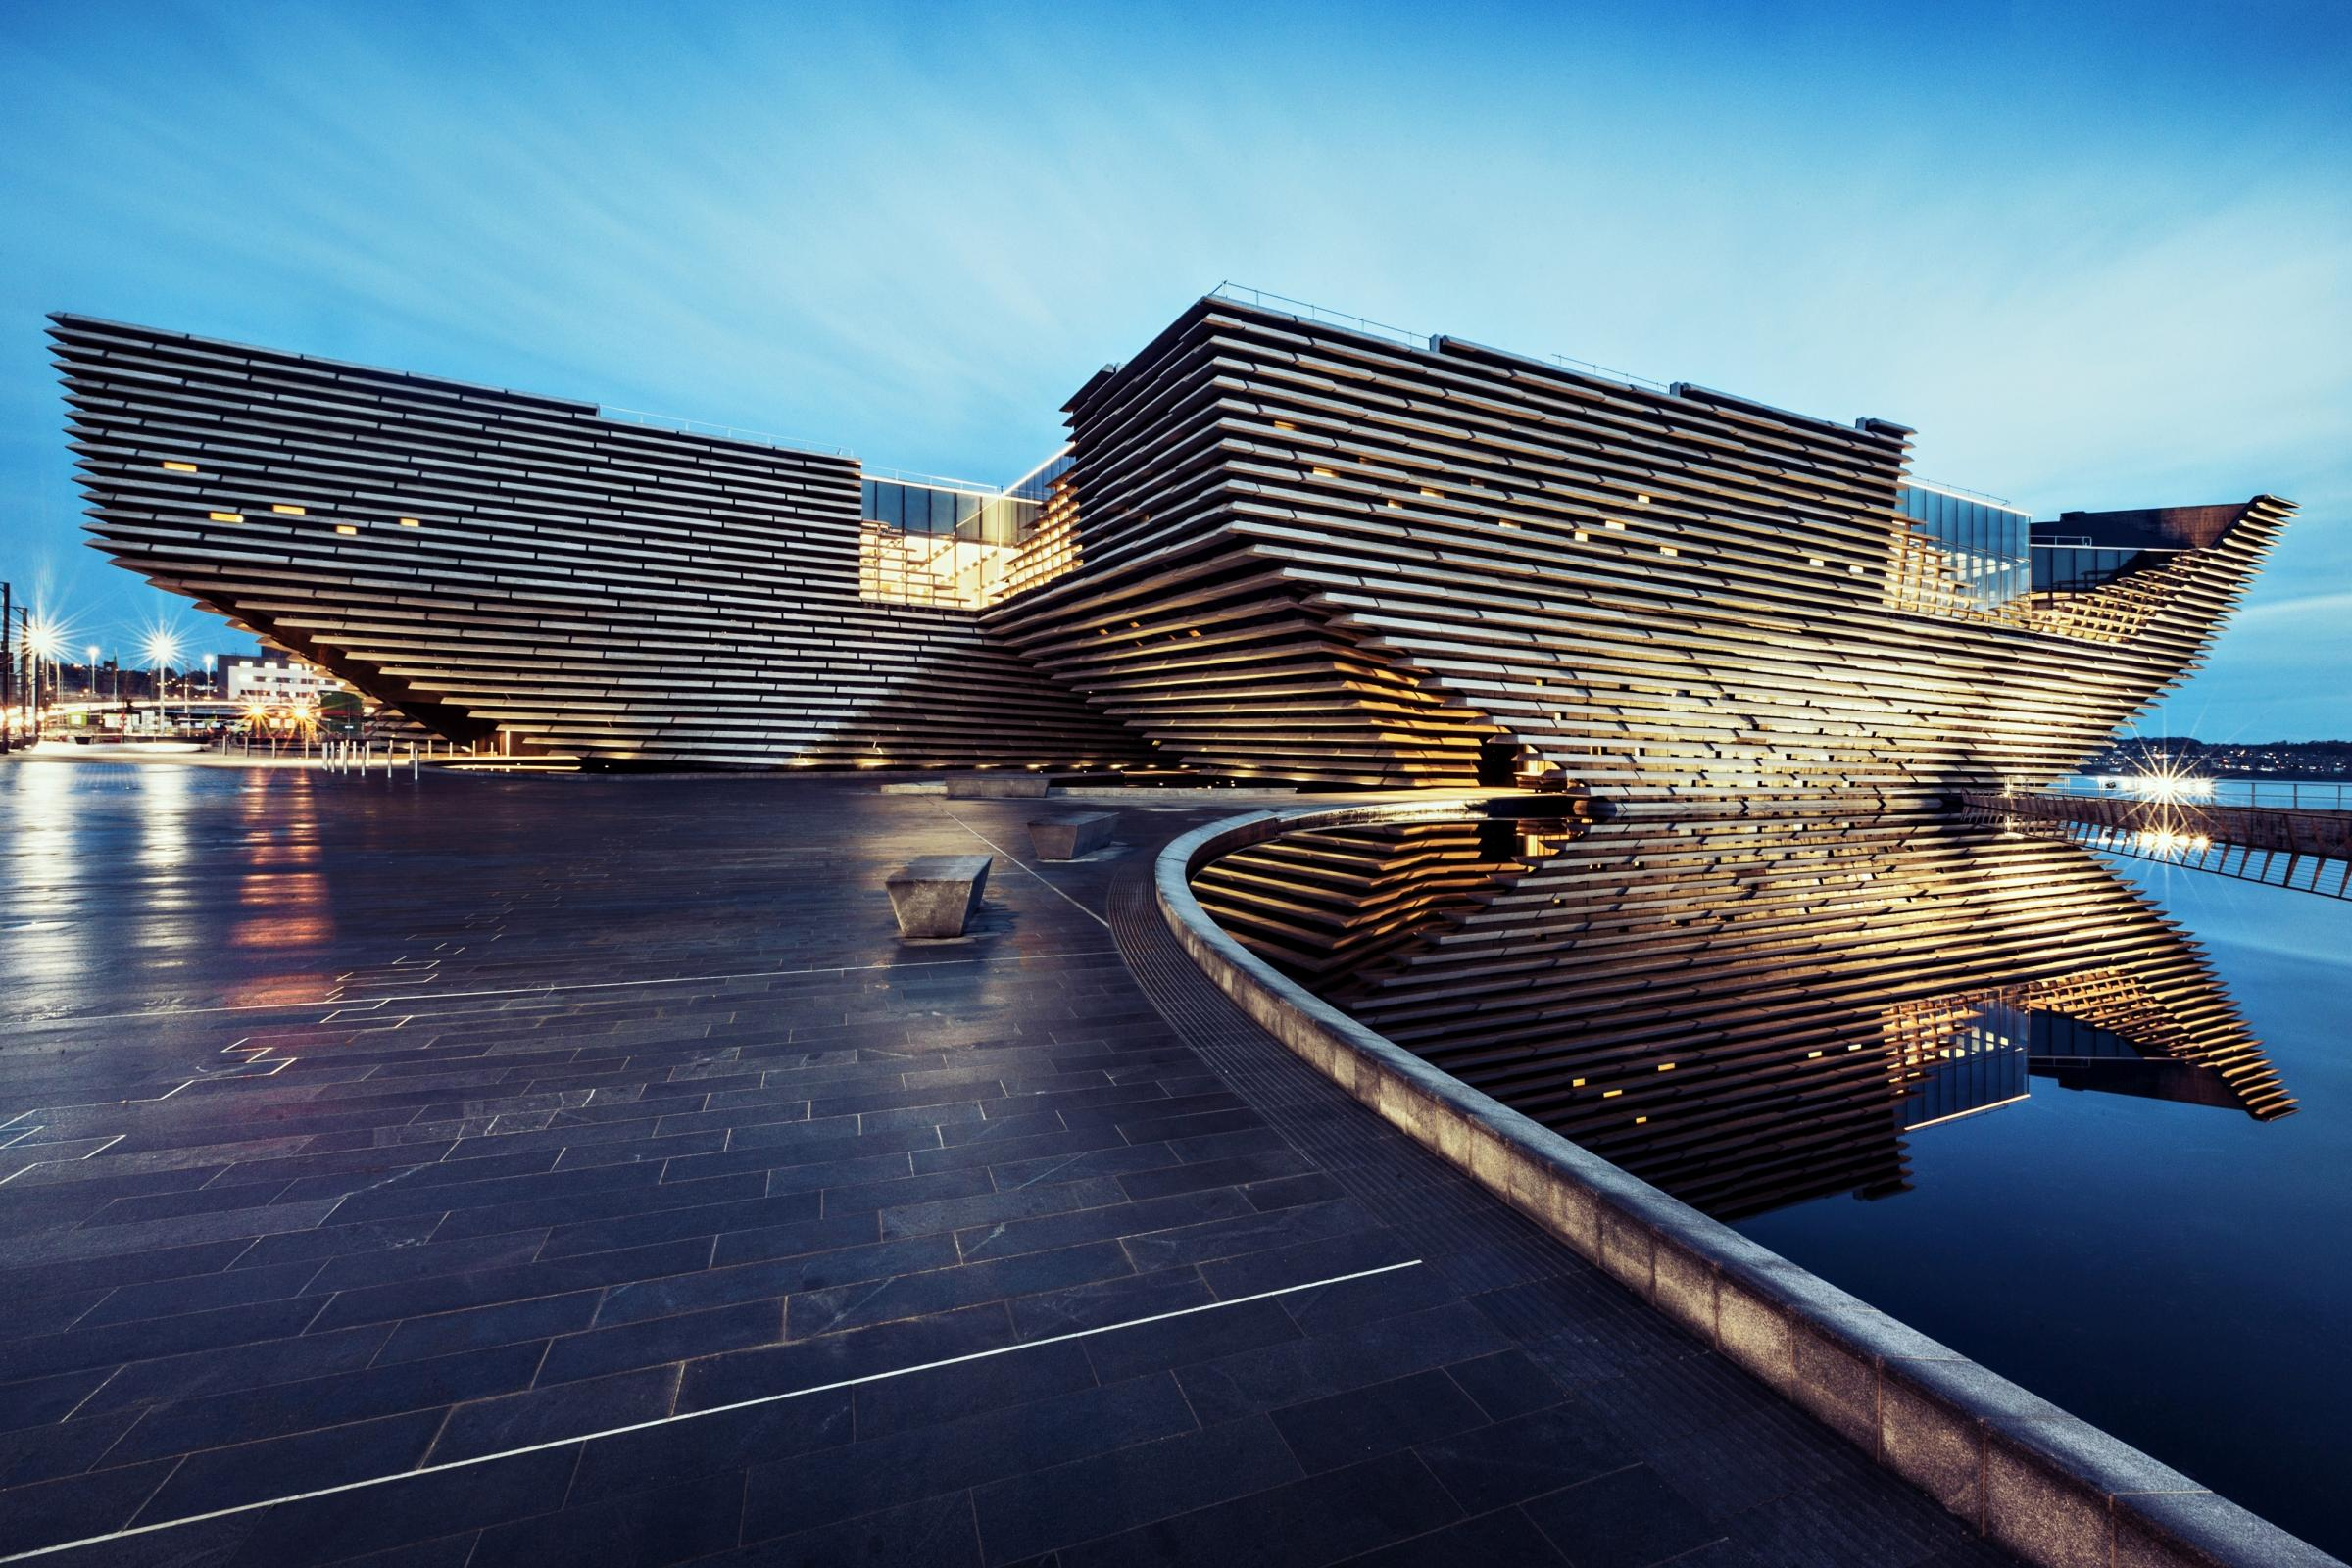 V&A Dundee - designed by Kengo Kuma. Photo: Ross Fraser McLean